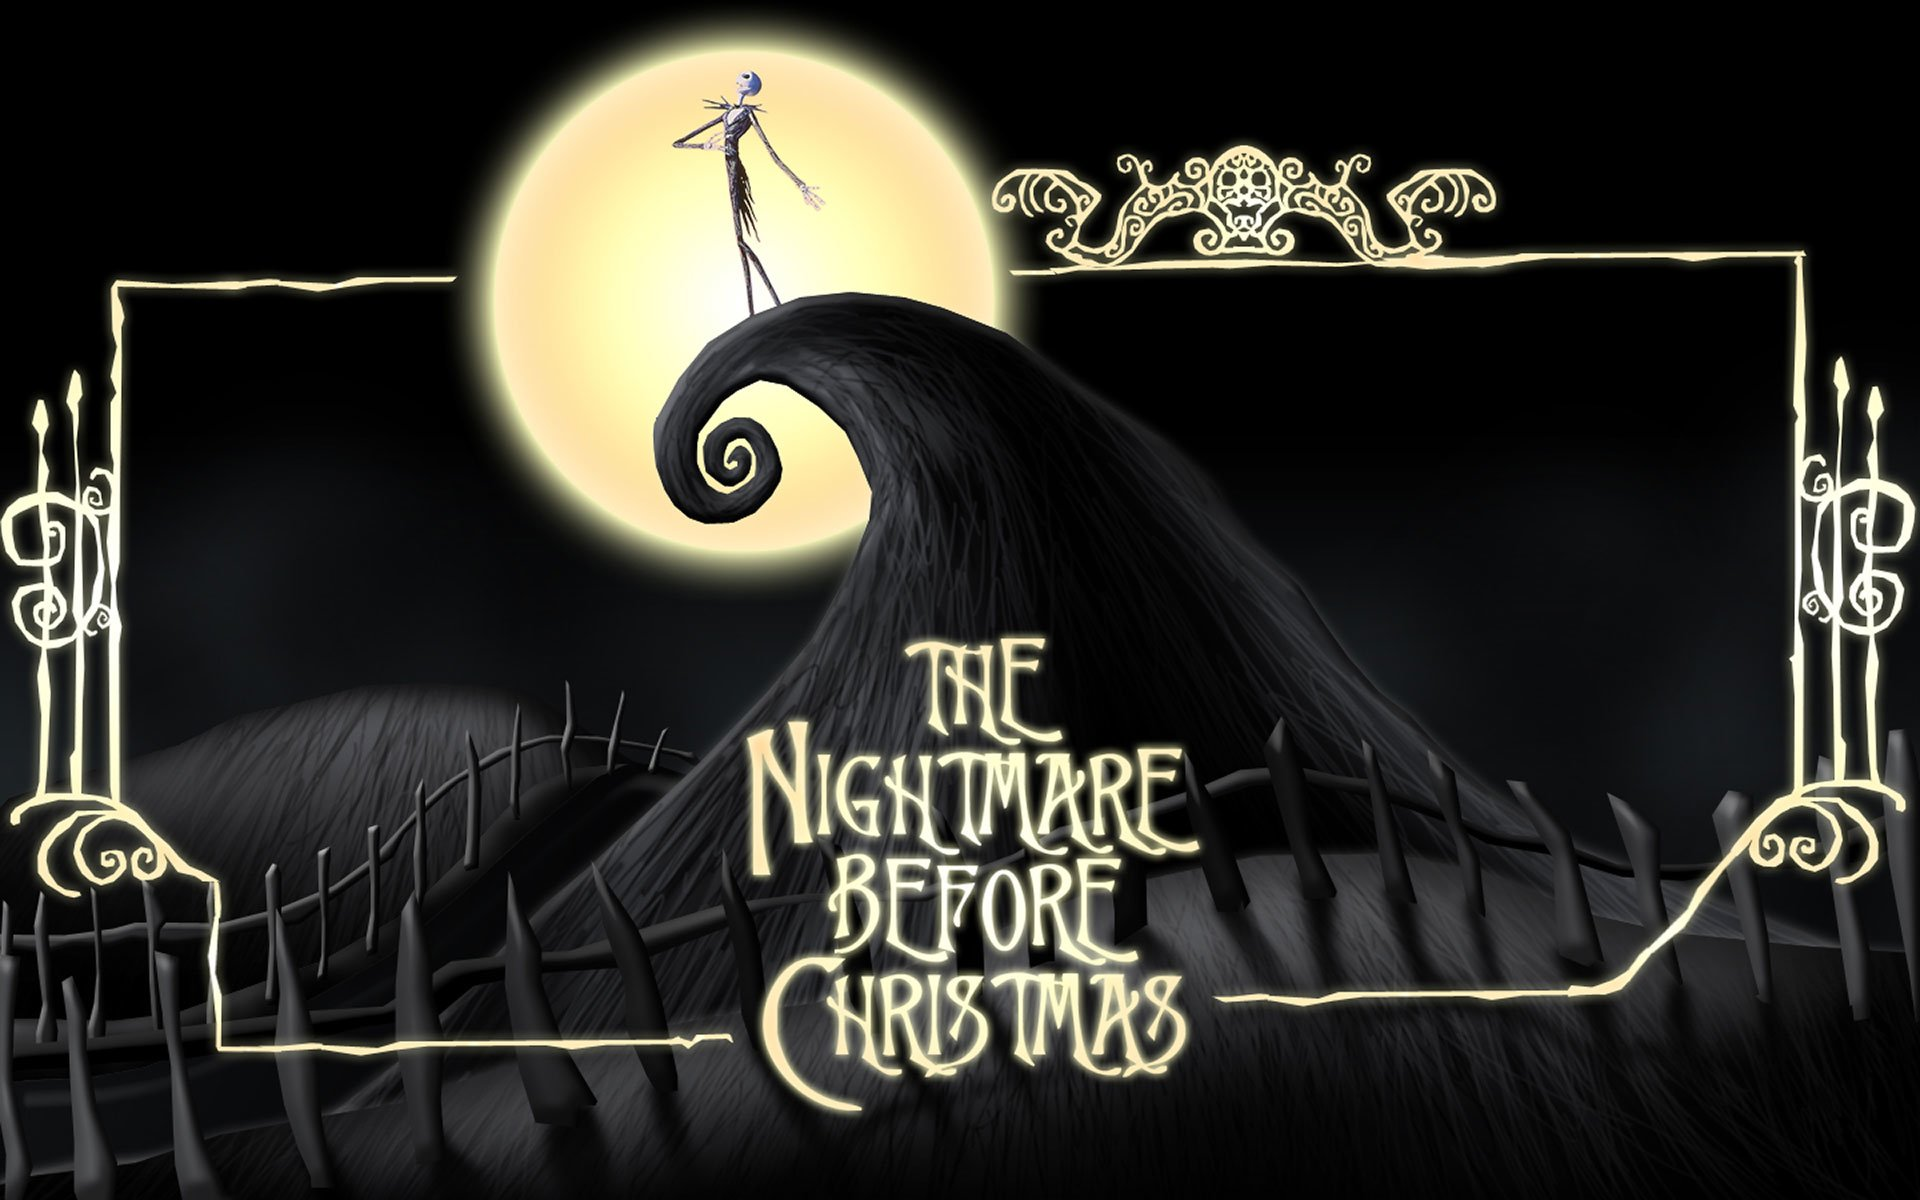 38 The Nightmare Before Christmas HD Wallpapers | Background Images ...